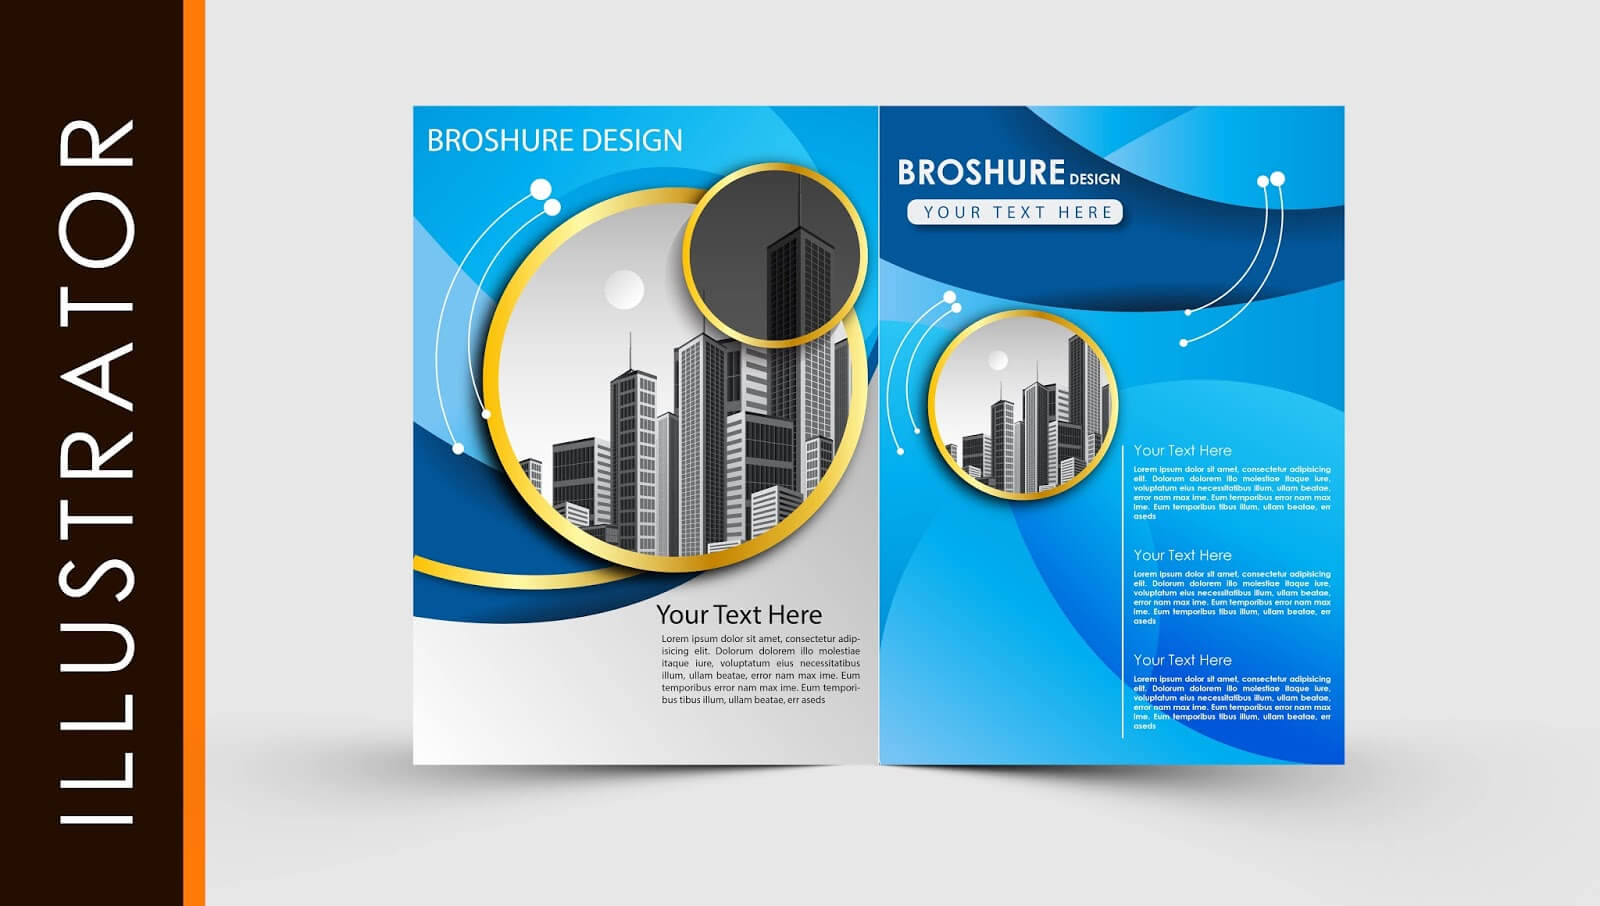 Free Download Adobe Illustrator Template Brochure Two Fold Pertaining To Illustrator Brochure Templates Free Download